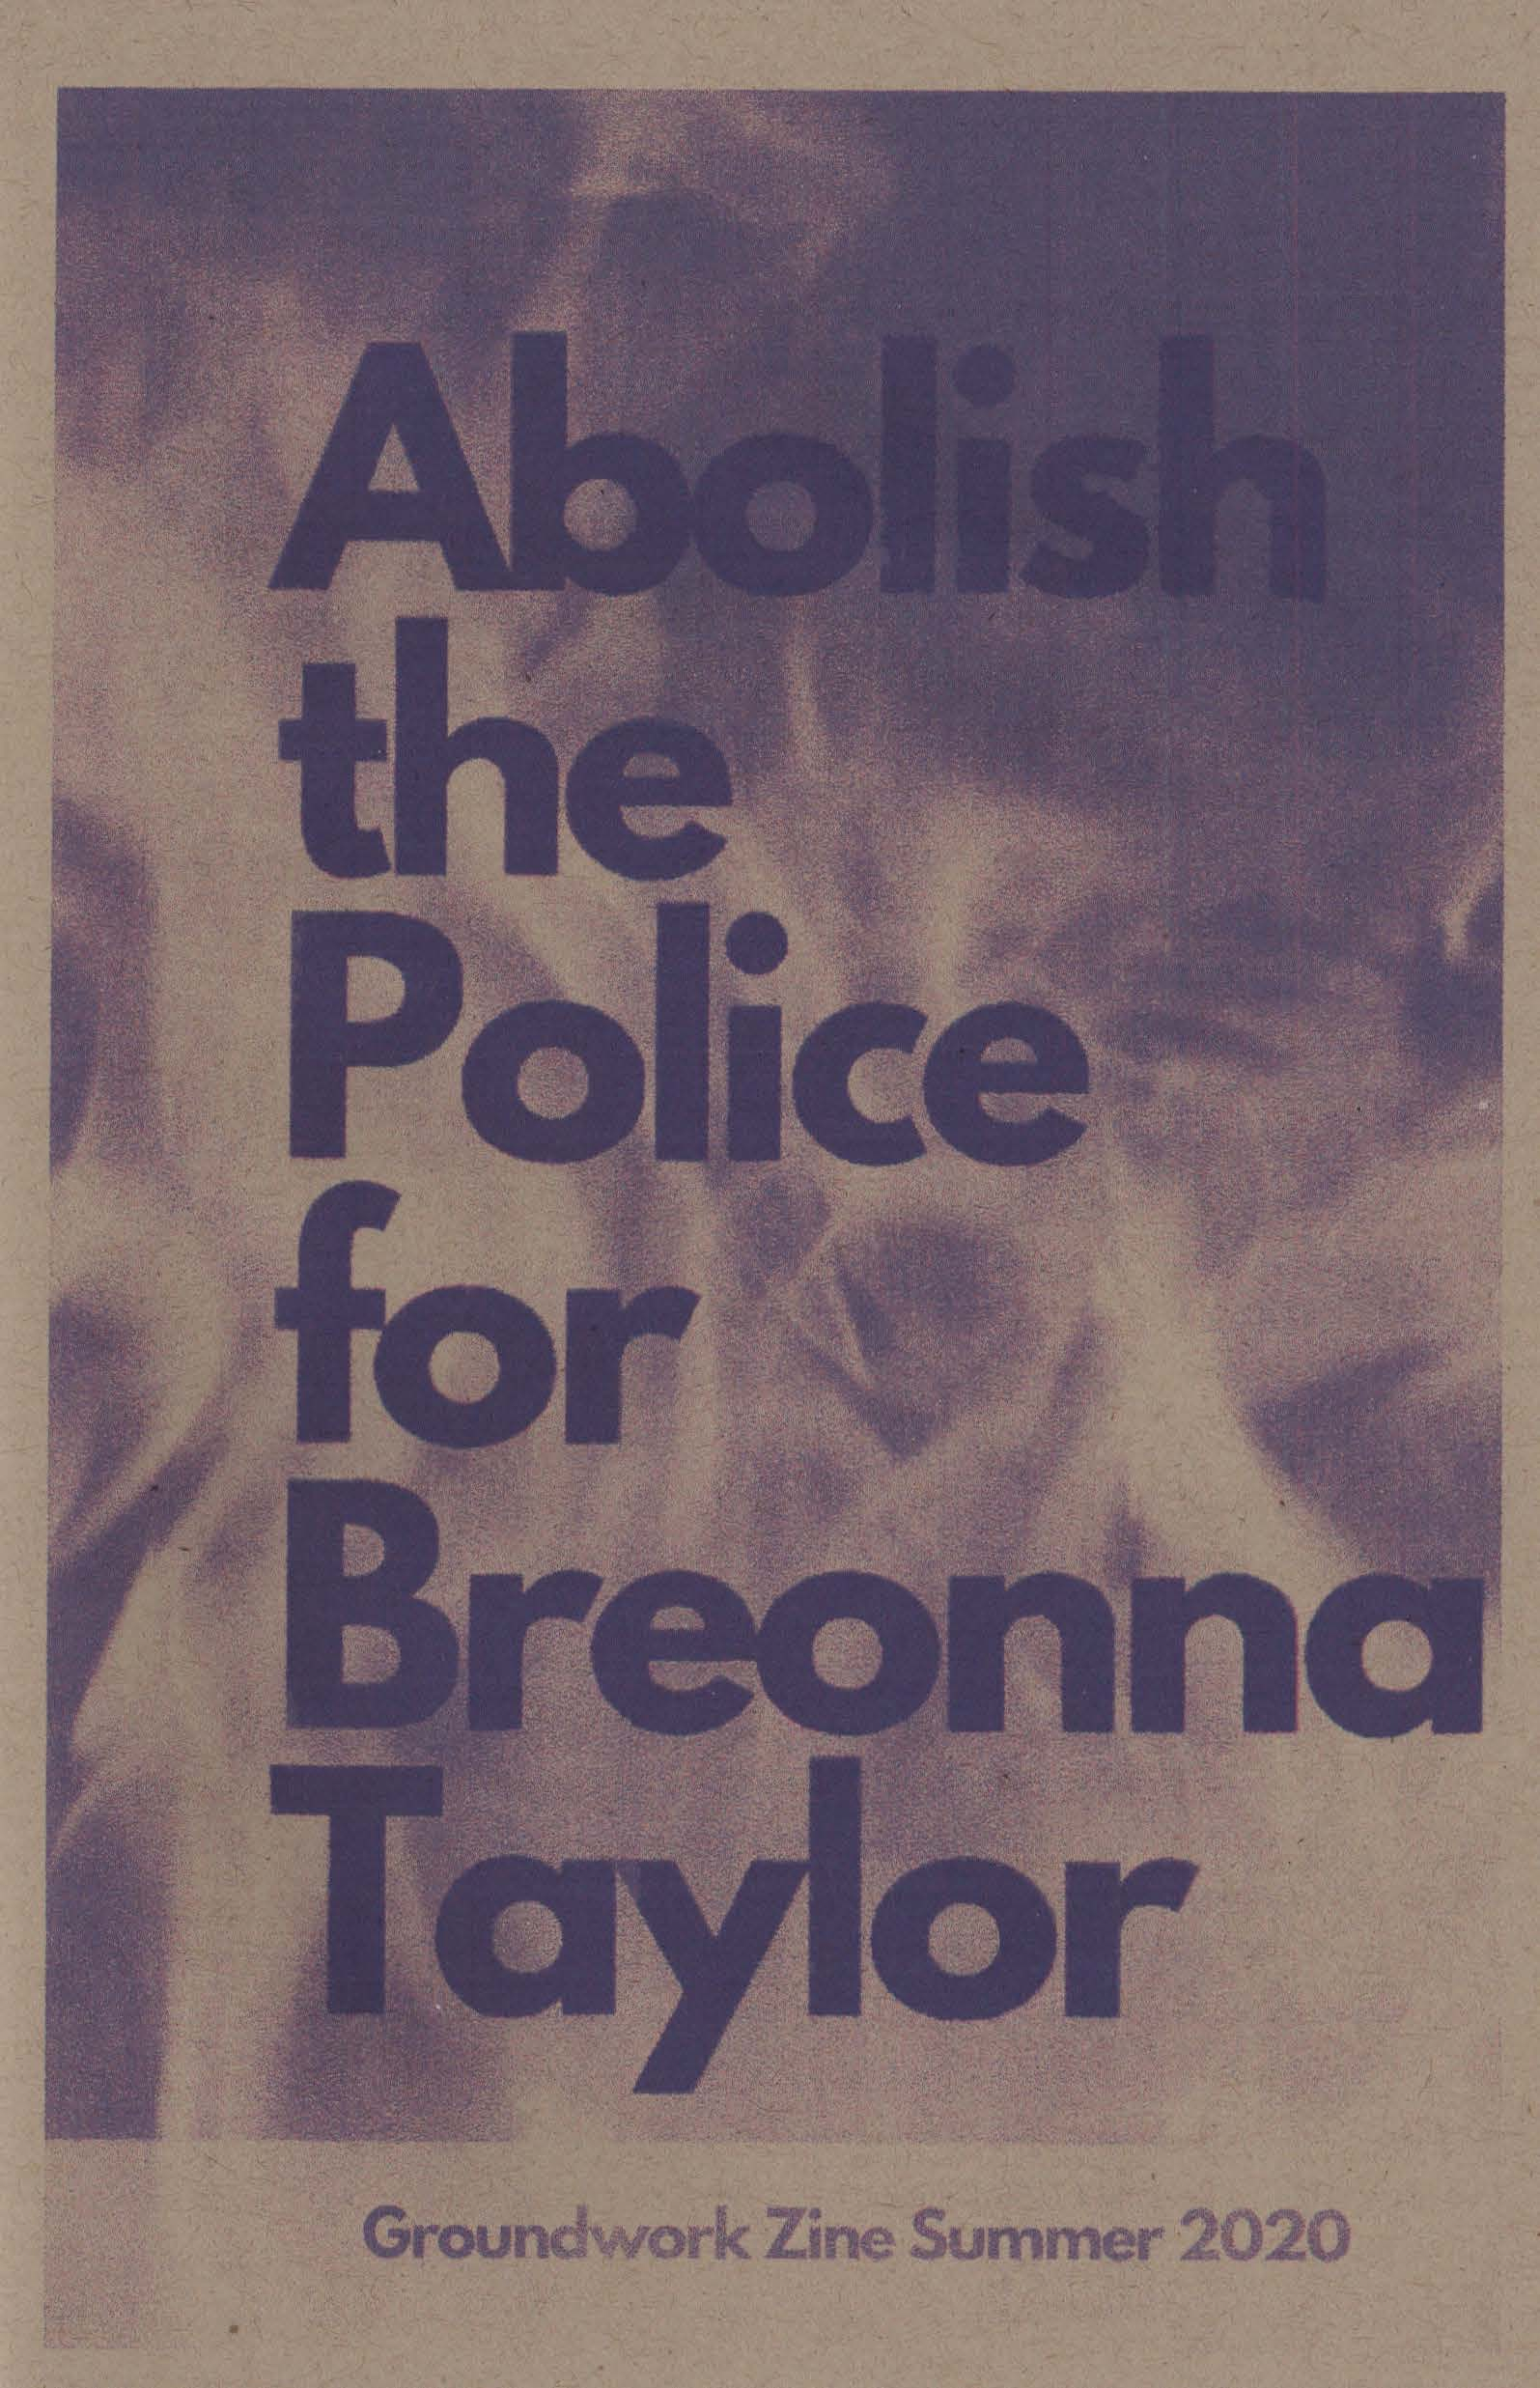 Abolish the Police for Breonna Taylor